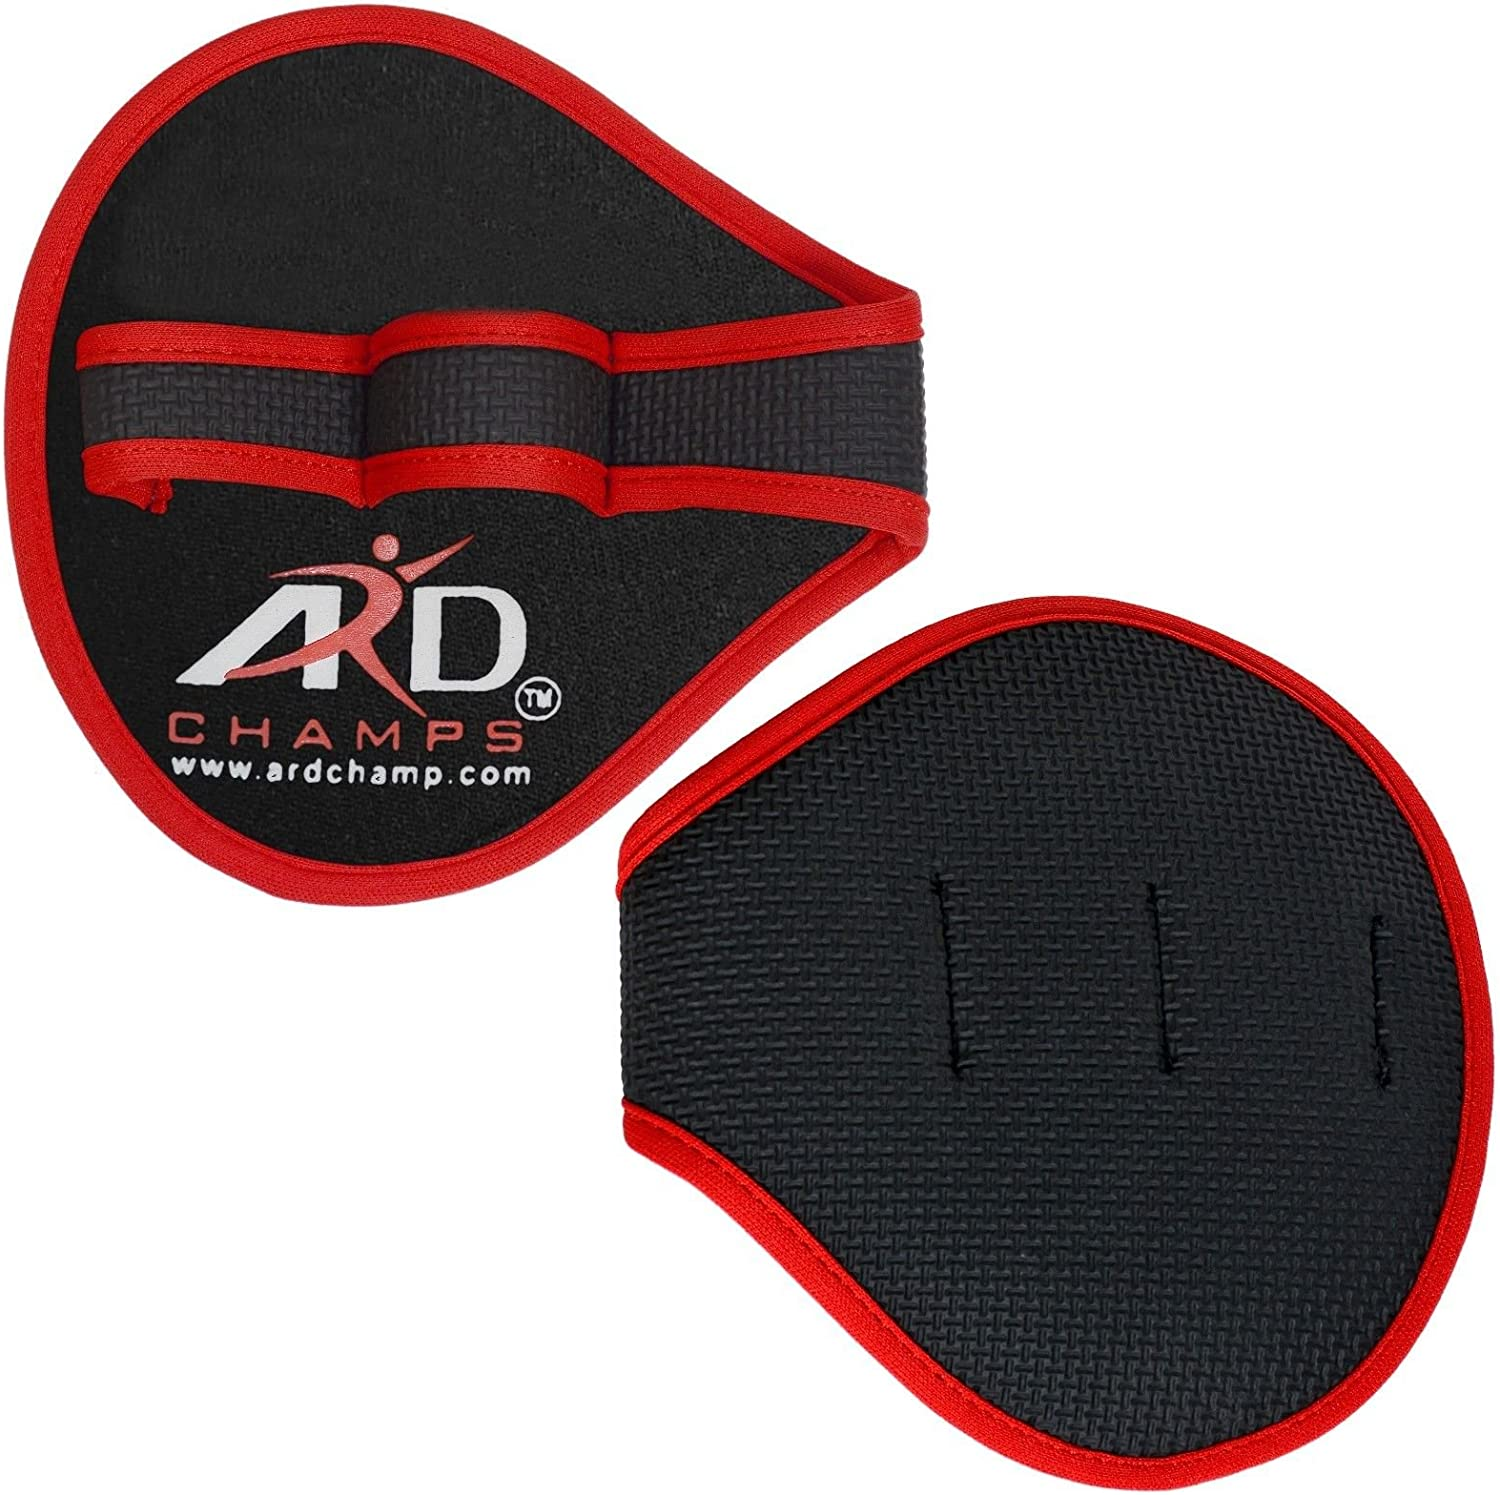 ARD-Champs Heavy Duty Gym Gloves Hand Max 57% OFF Grips for Now on sale Workout Exercise